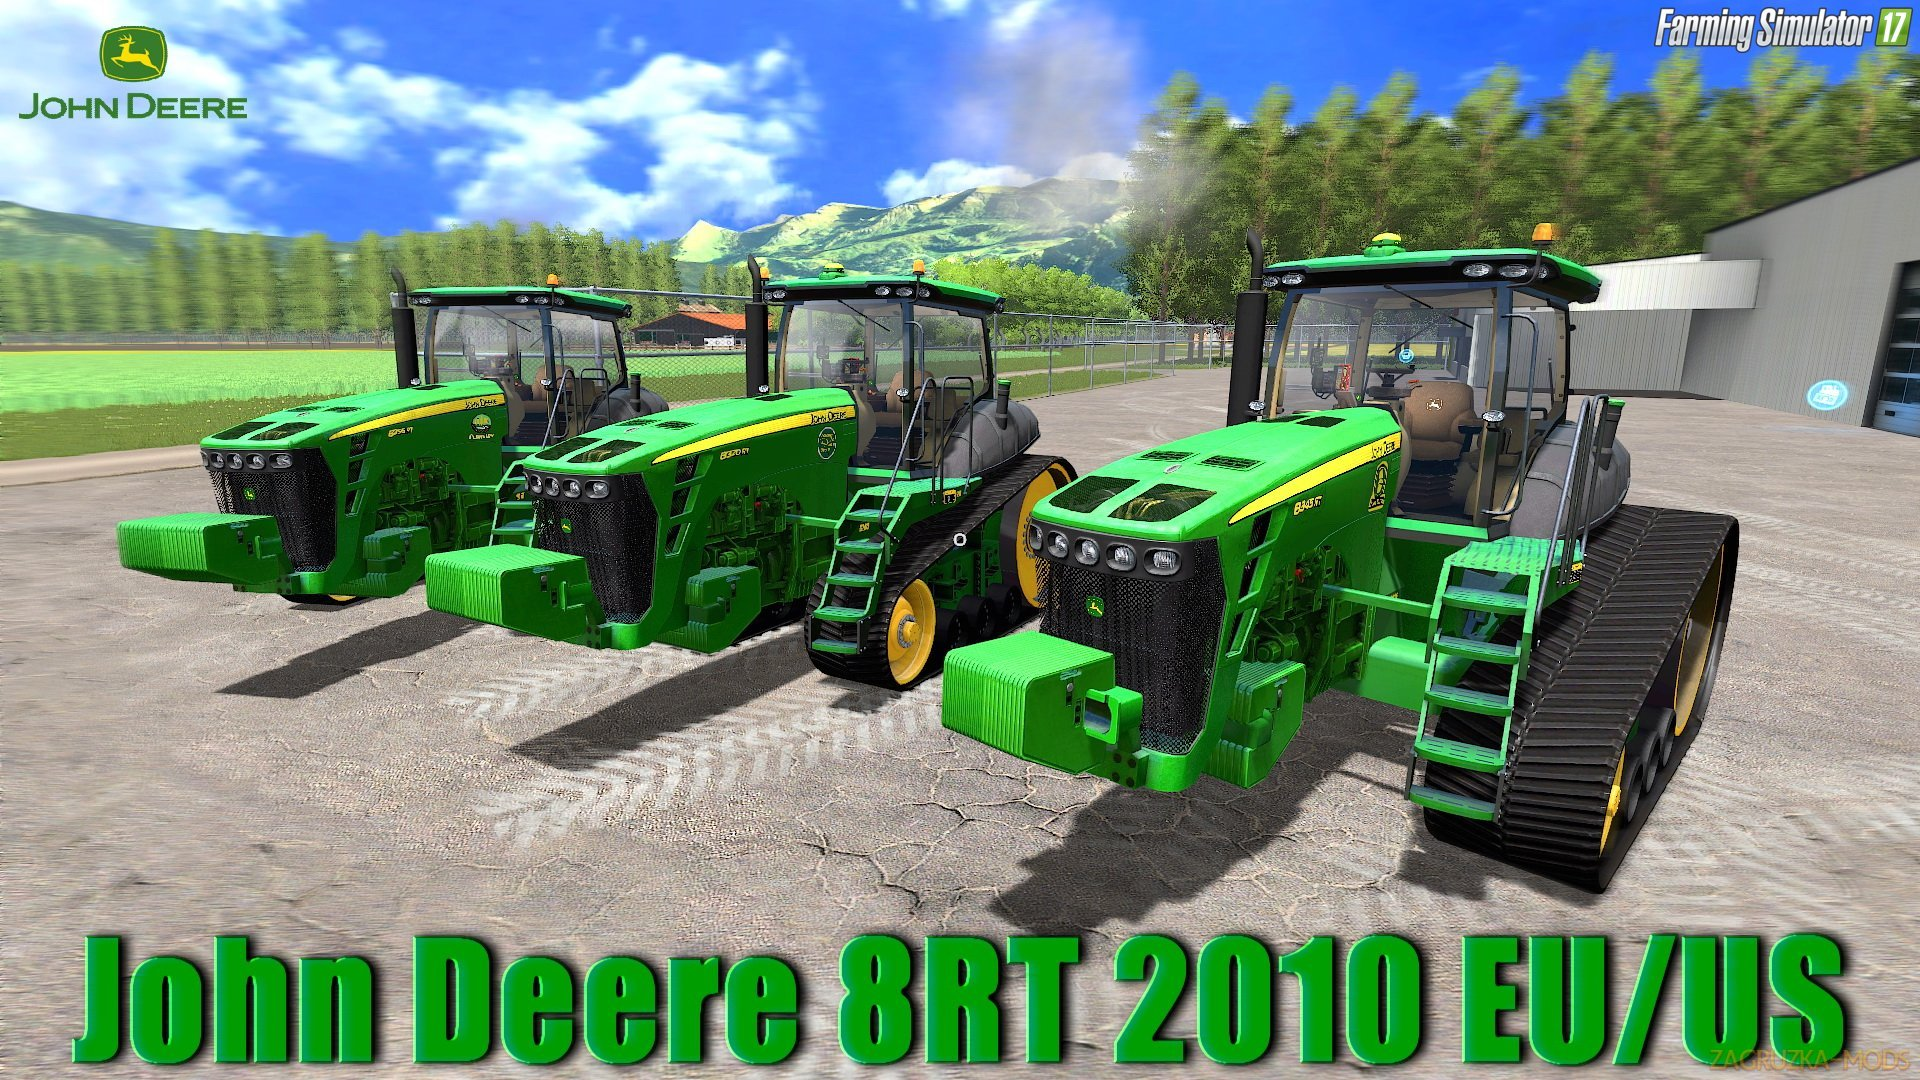 John Deere 8RT 2010 EU/US v2.1 for FS17